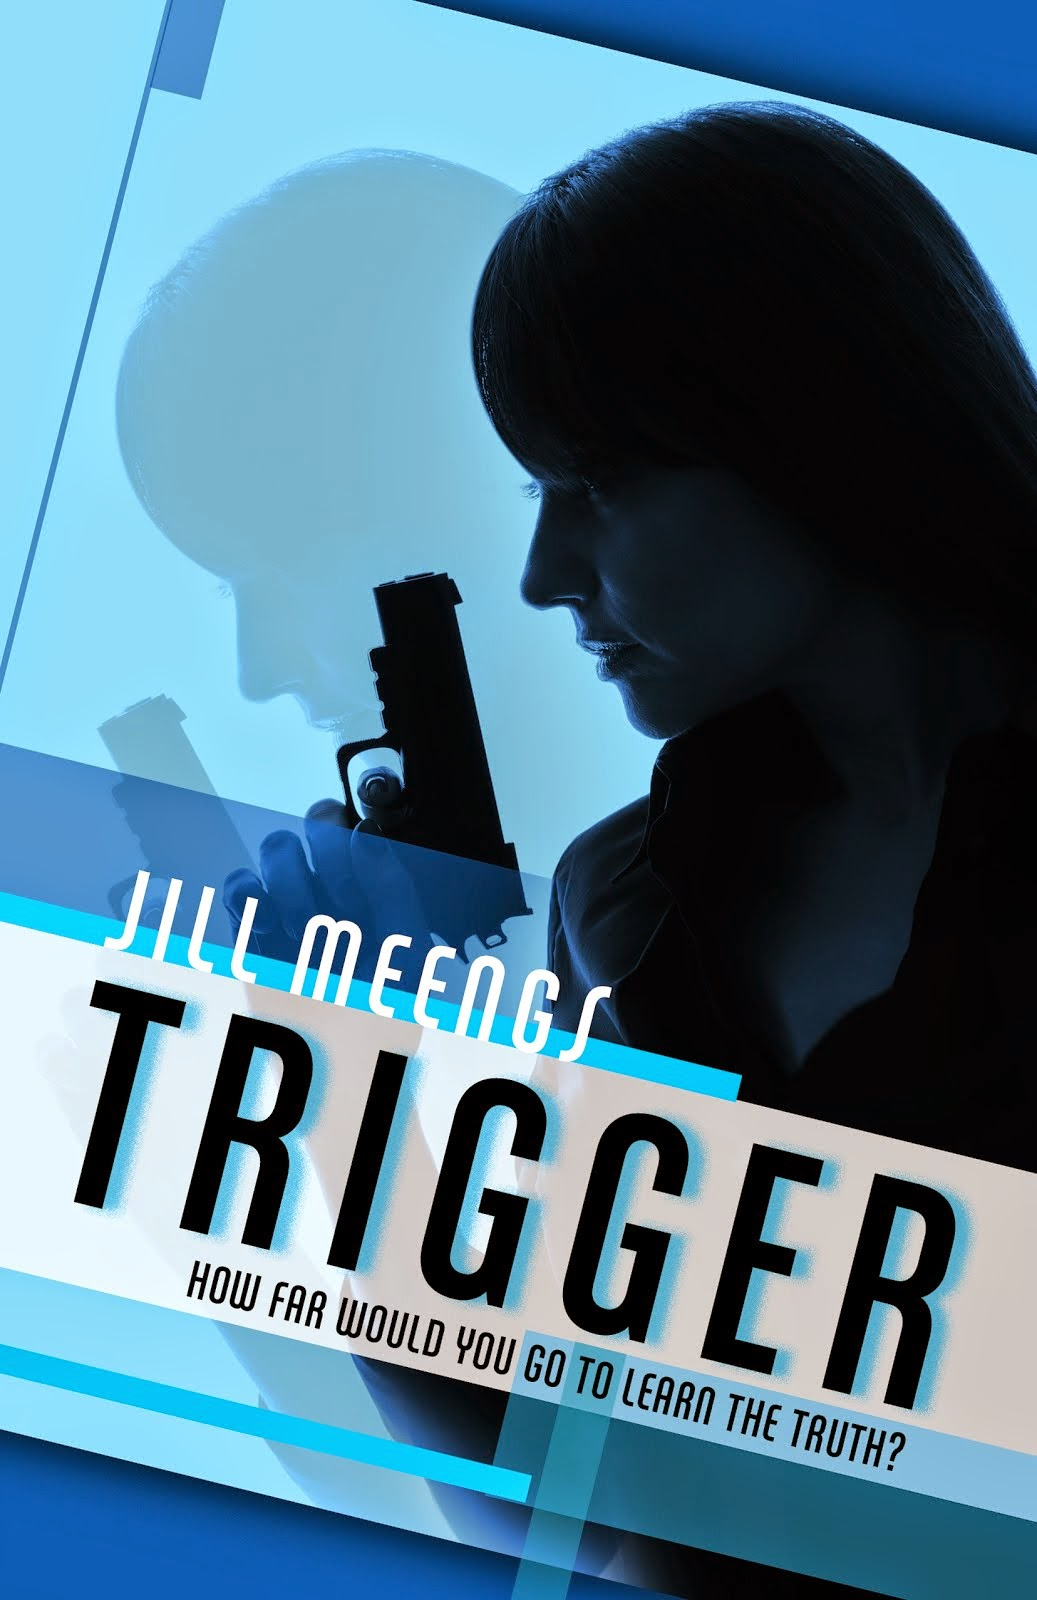 Trigger by Jill Meengs